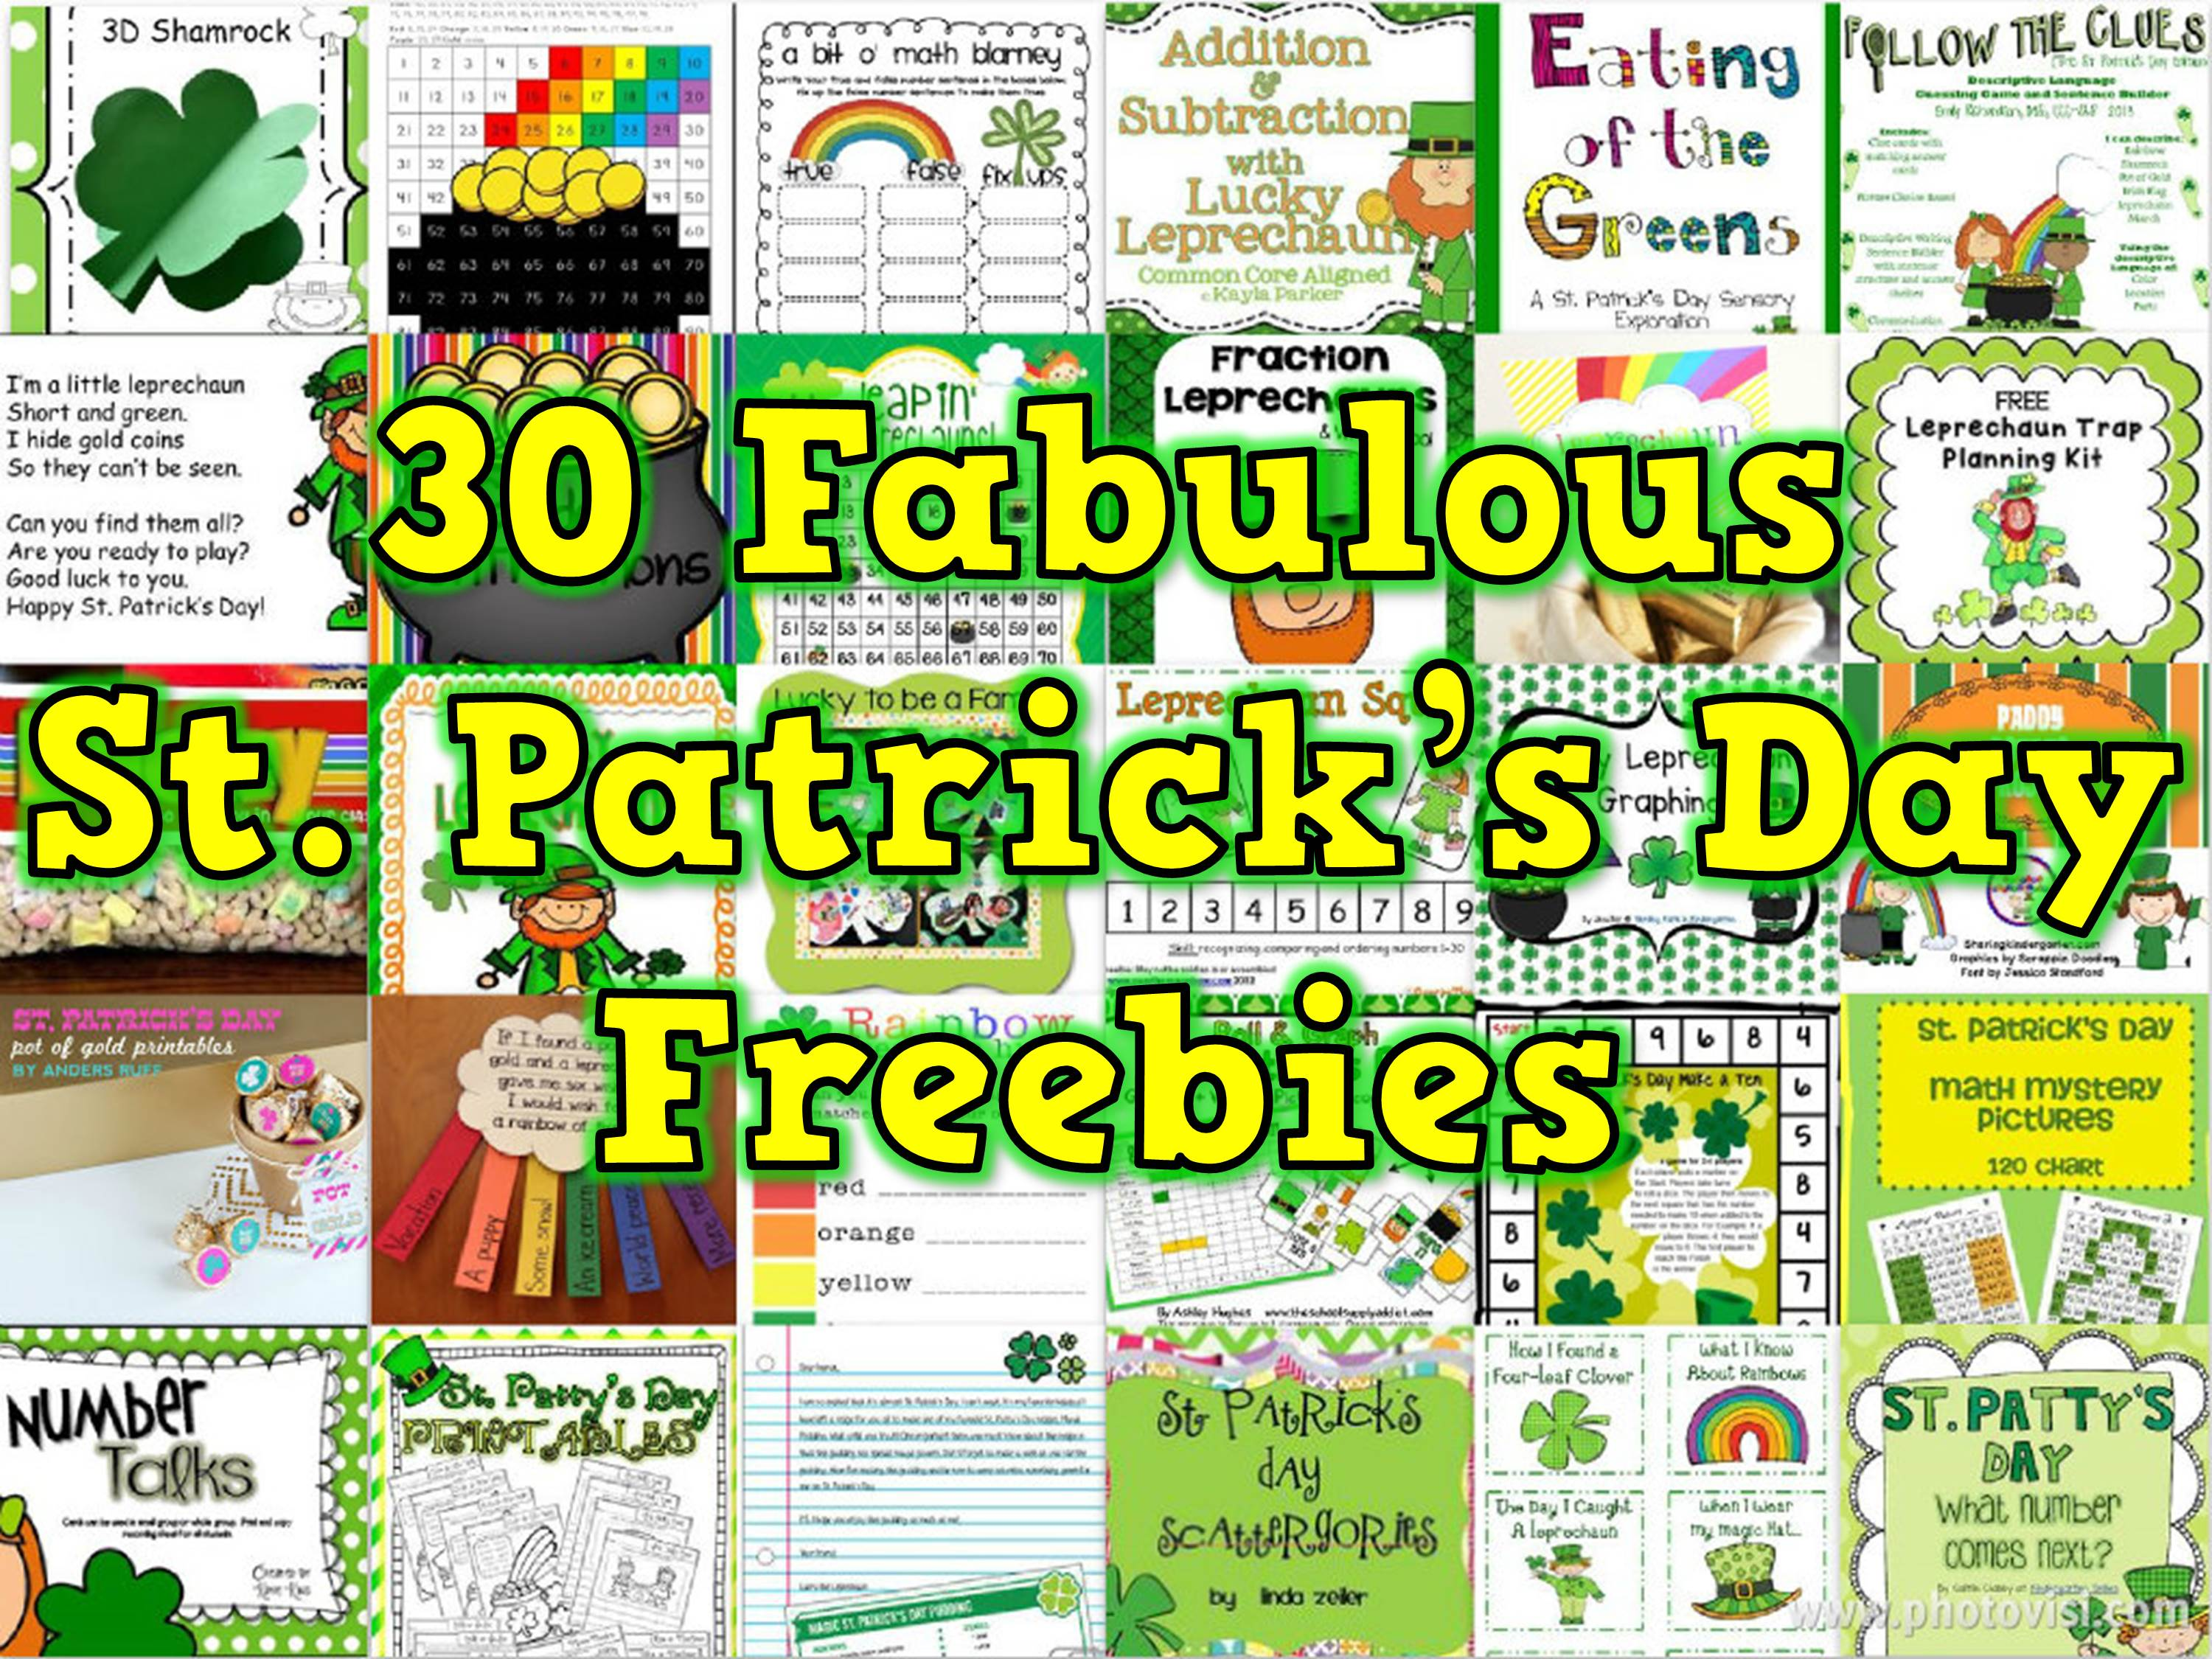 Correct 30 Fabulous St Patrick's Day Freebies collage final version